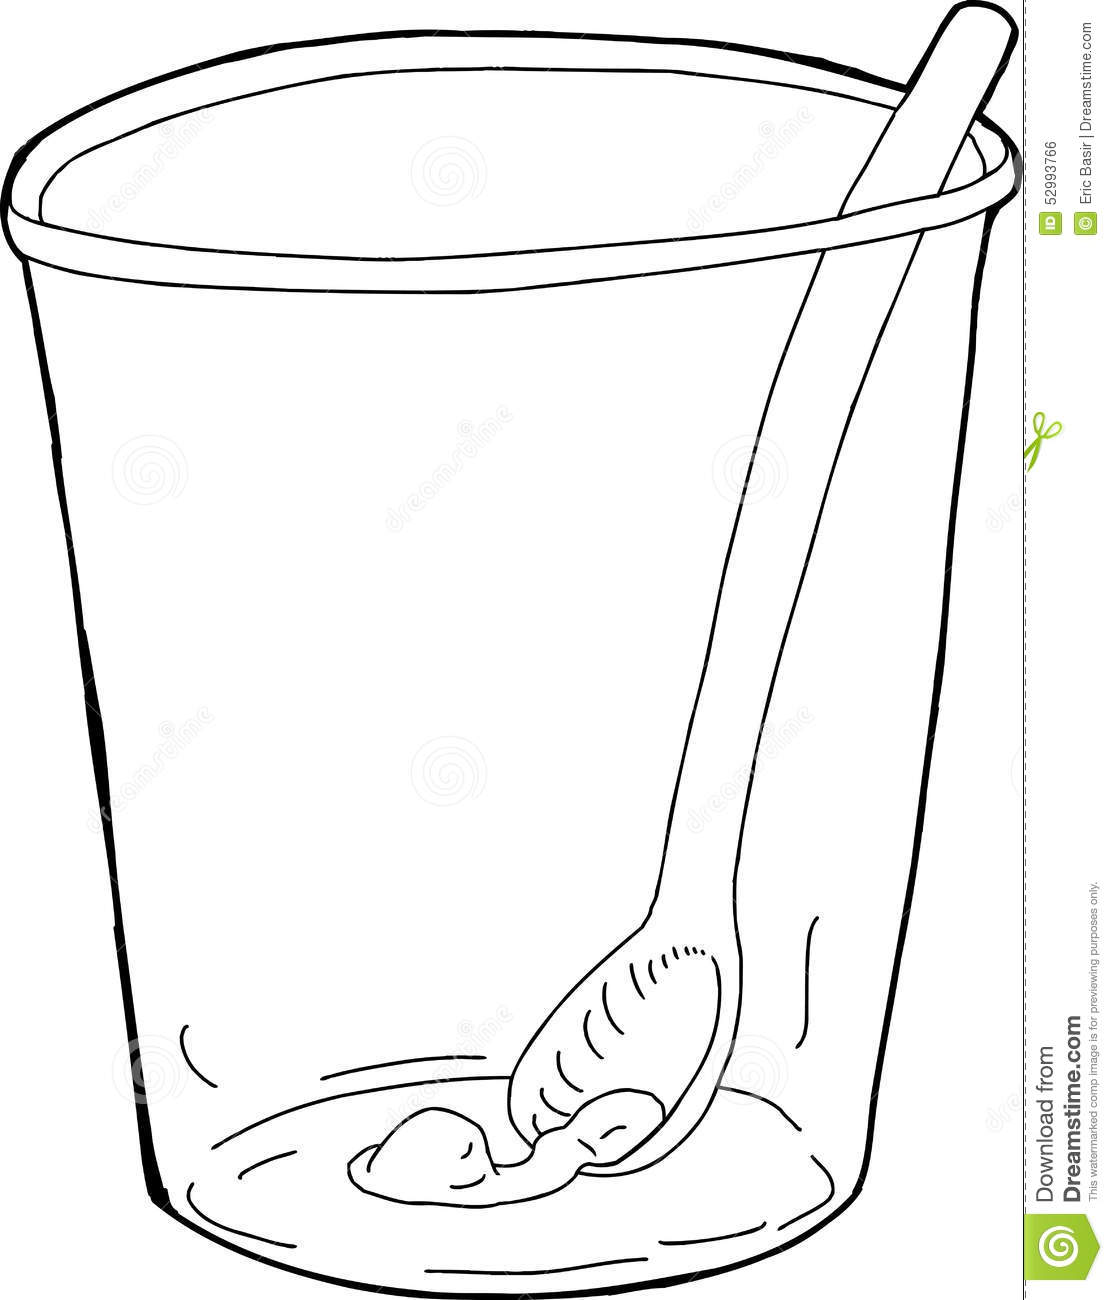 Cup With Spoon And Food Inside Stock Illustration